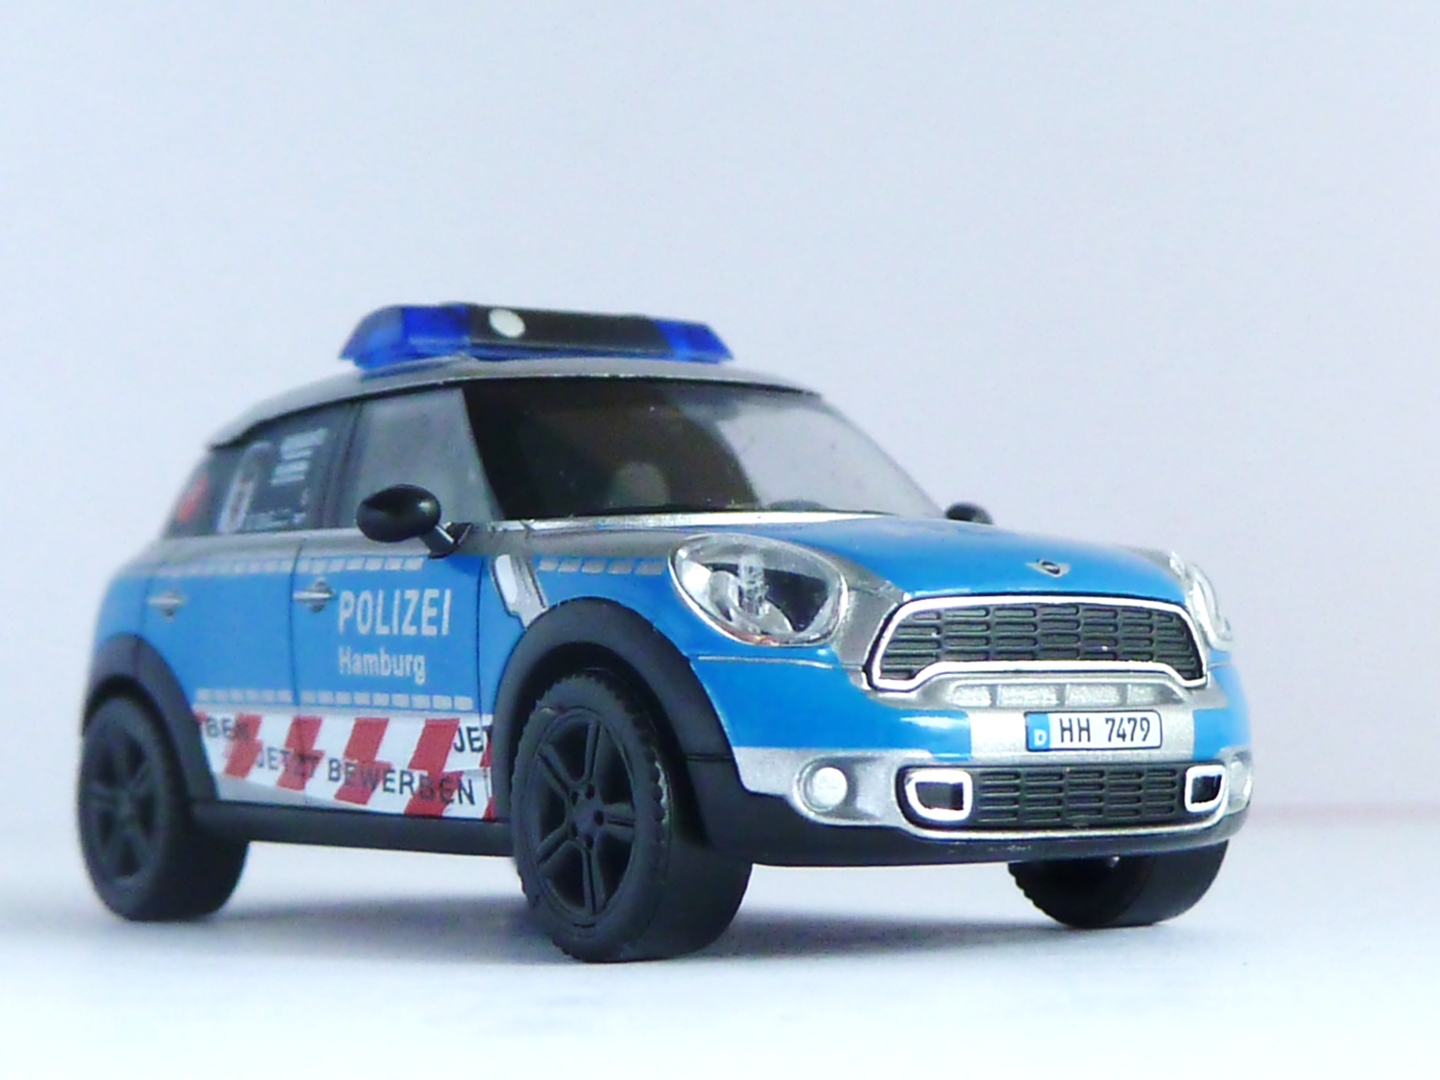 bmw mini cooper countryman polizei hamburg version 1 hh 7479 polizeimodelle. Black Bedroom Furniture Sets. Home Design Ideas